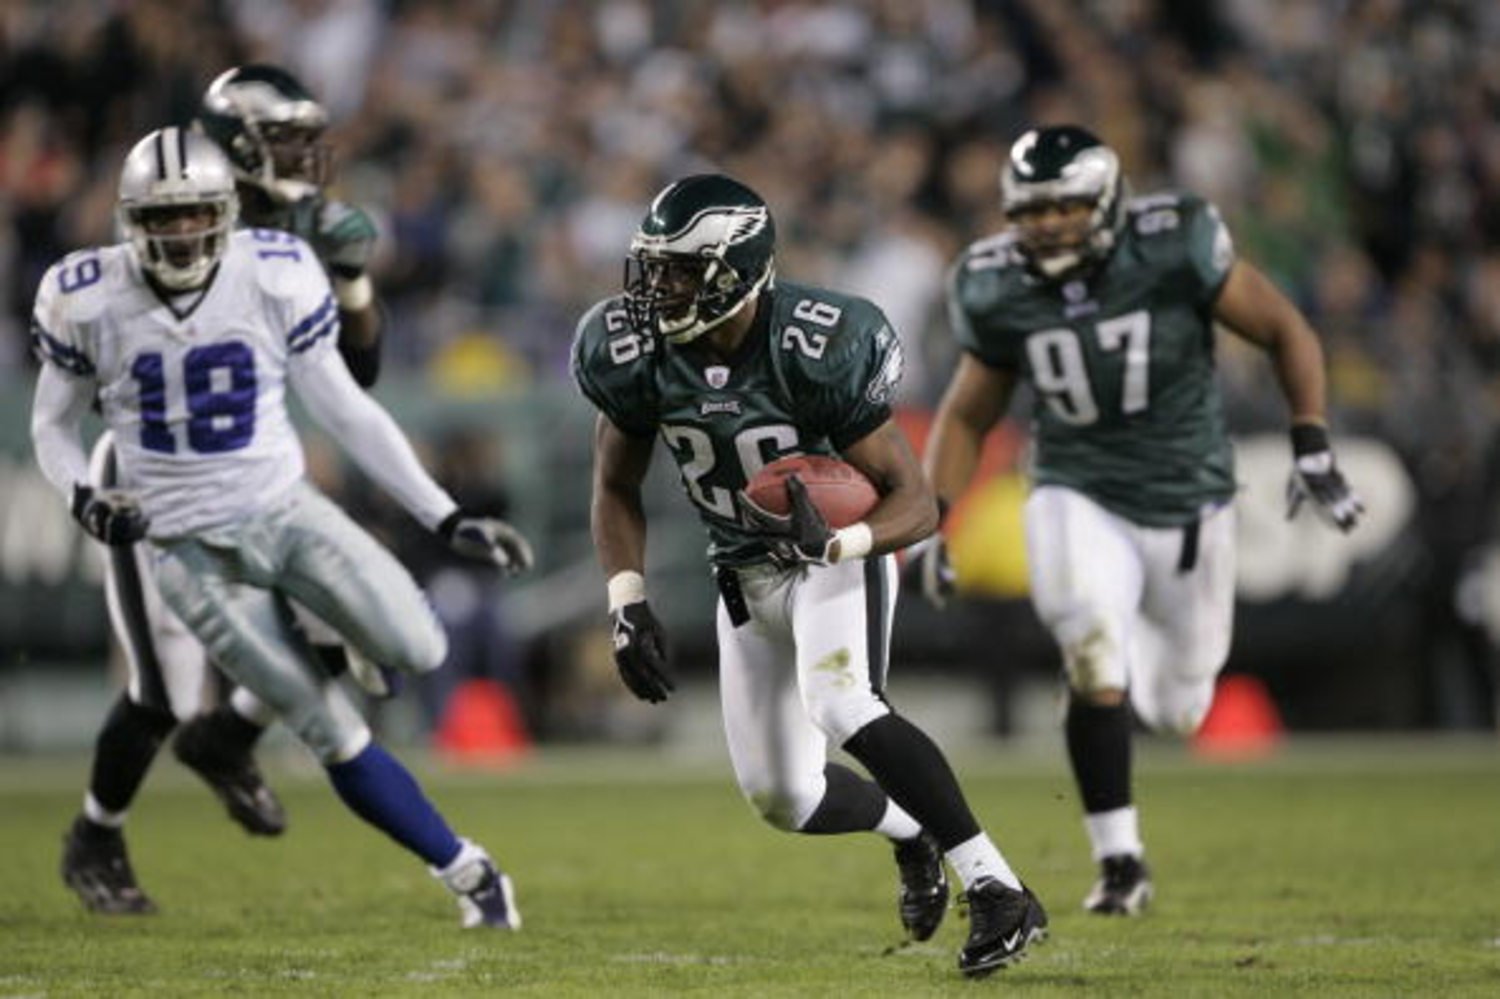 What Happened to Philadelphia Eagles All-Pro Cornerback Lito Sheppard?